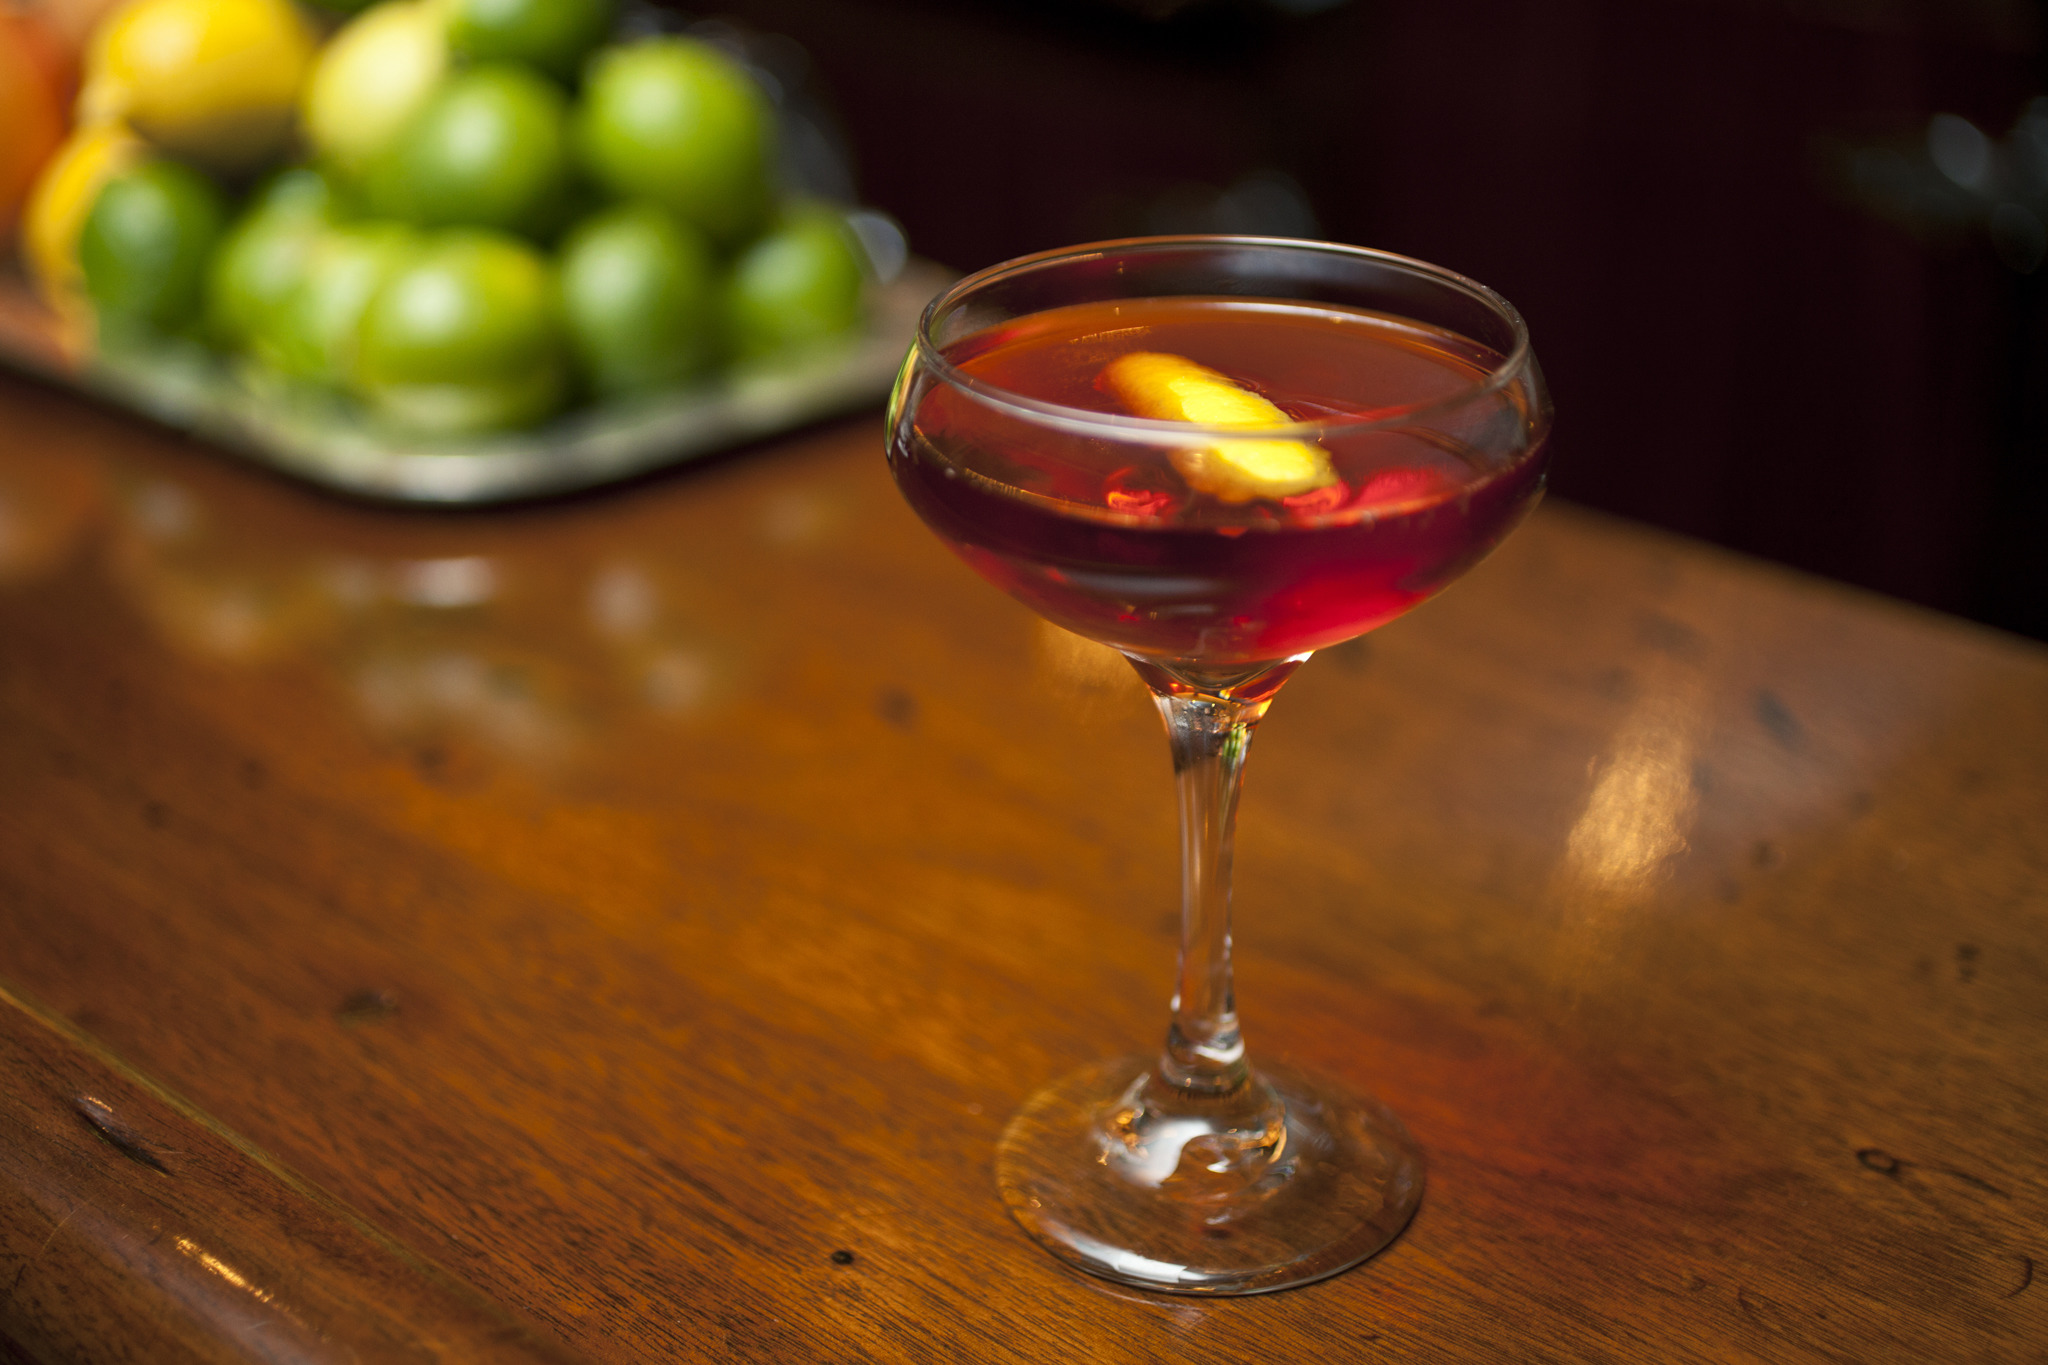 The Boulevardier at the Long Island Bar